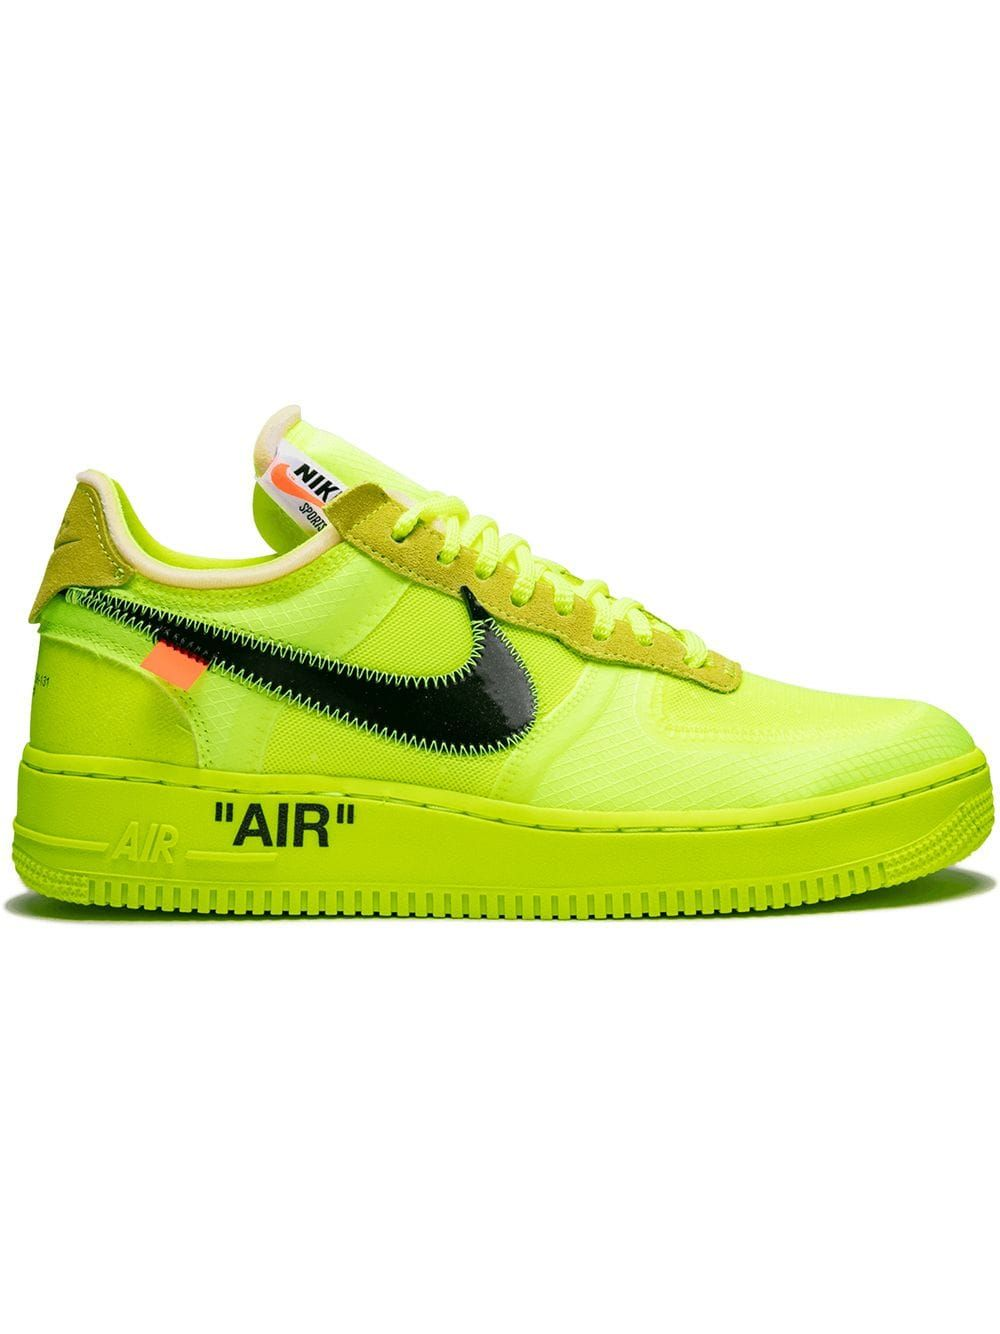 Nike The 10: Nike Air Force 1 Low Green | Nike air force